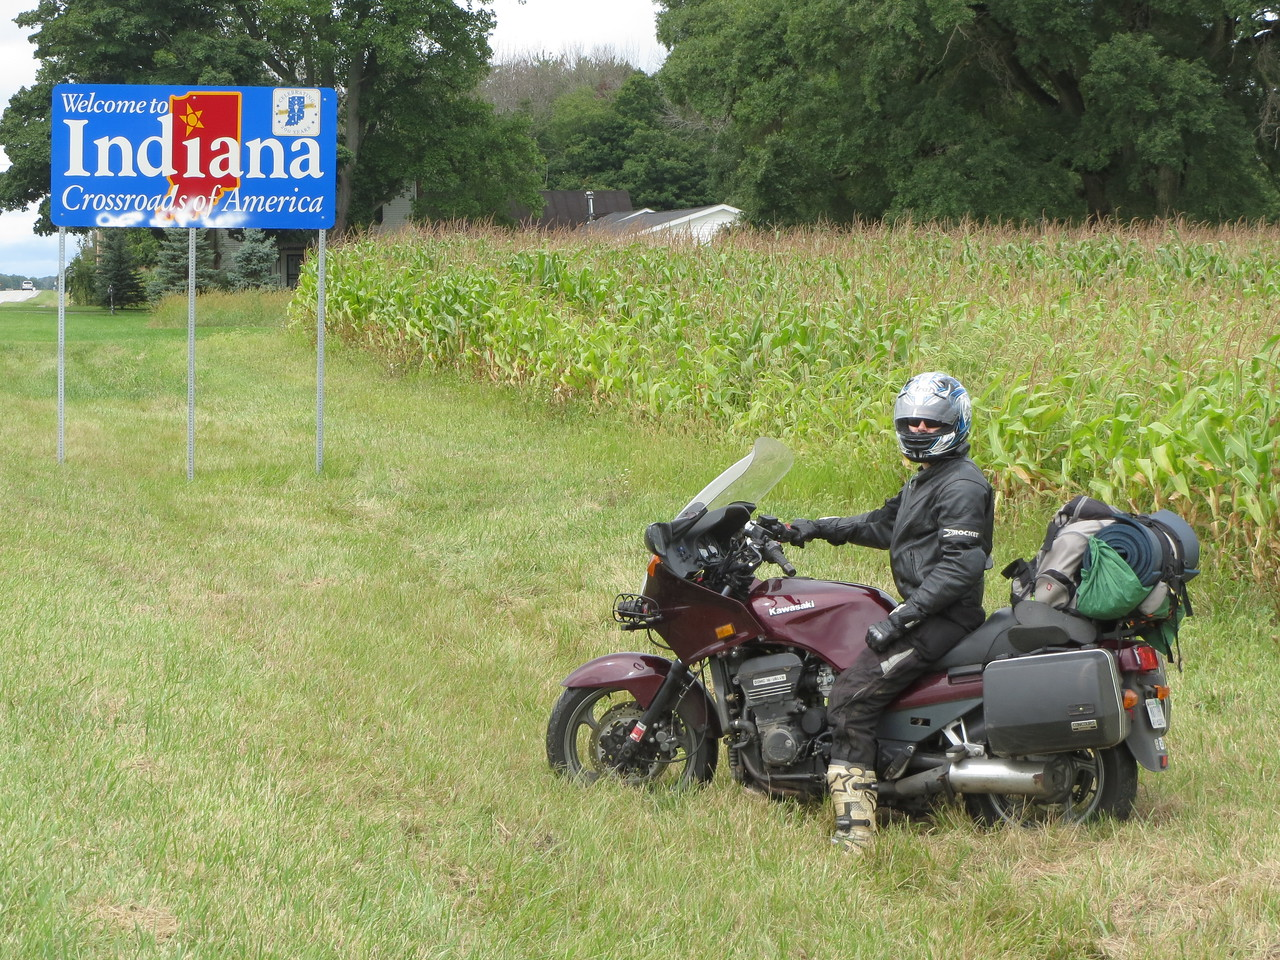 Day 1 (681 miles): Matt, who is originally from Indiana, at the first of many state lines